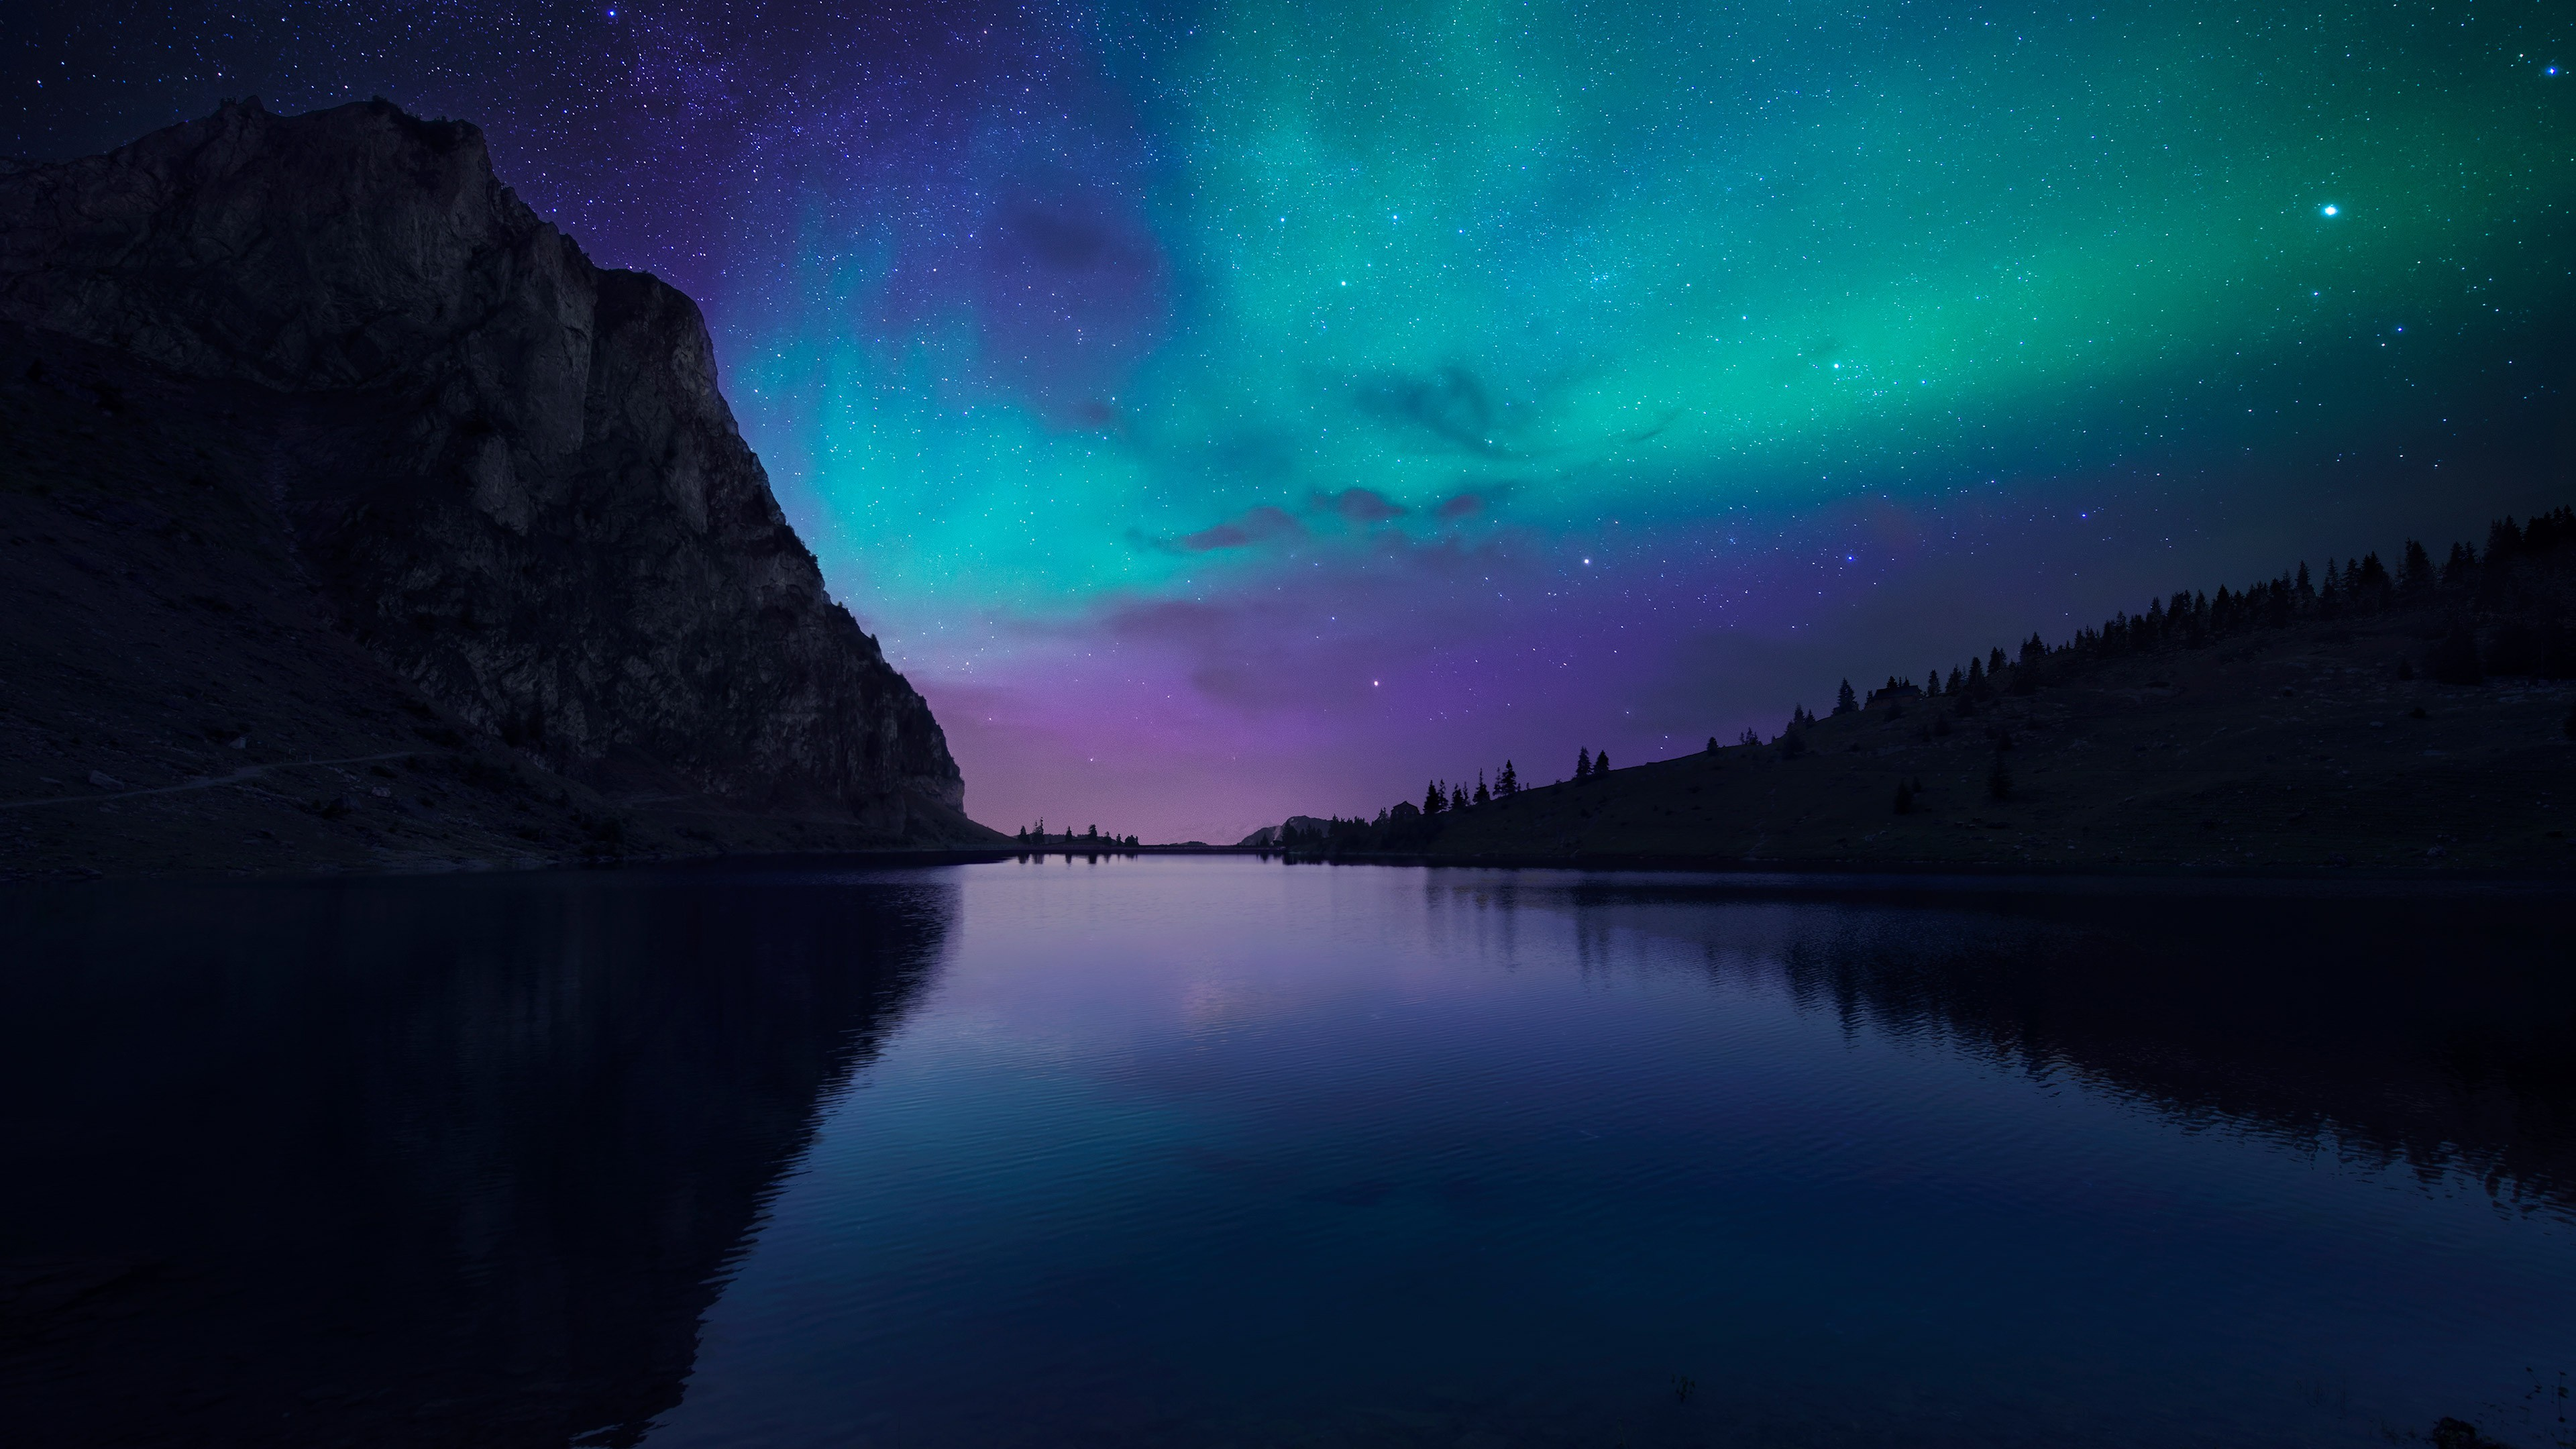 lake aurora 4k hd wallpaper florida night sky